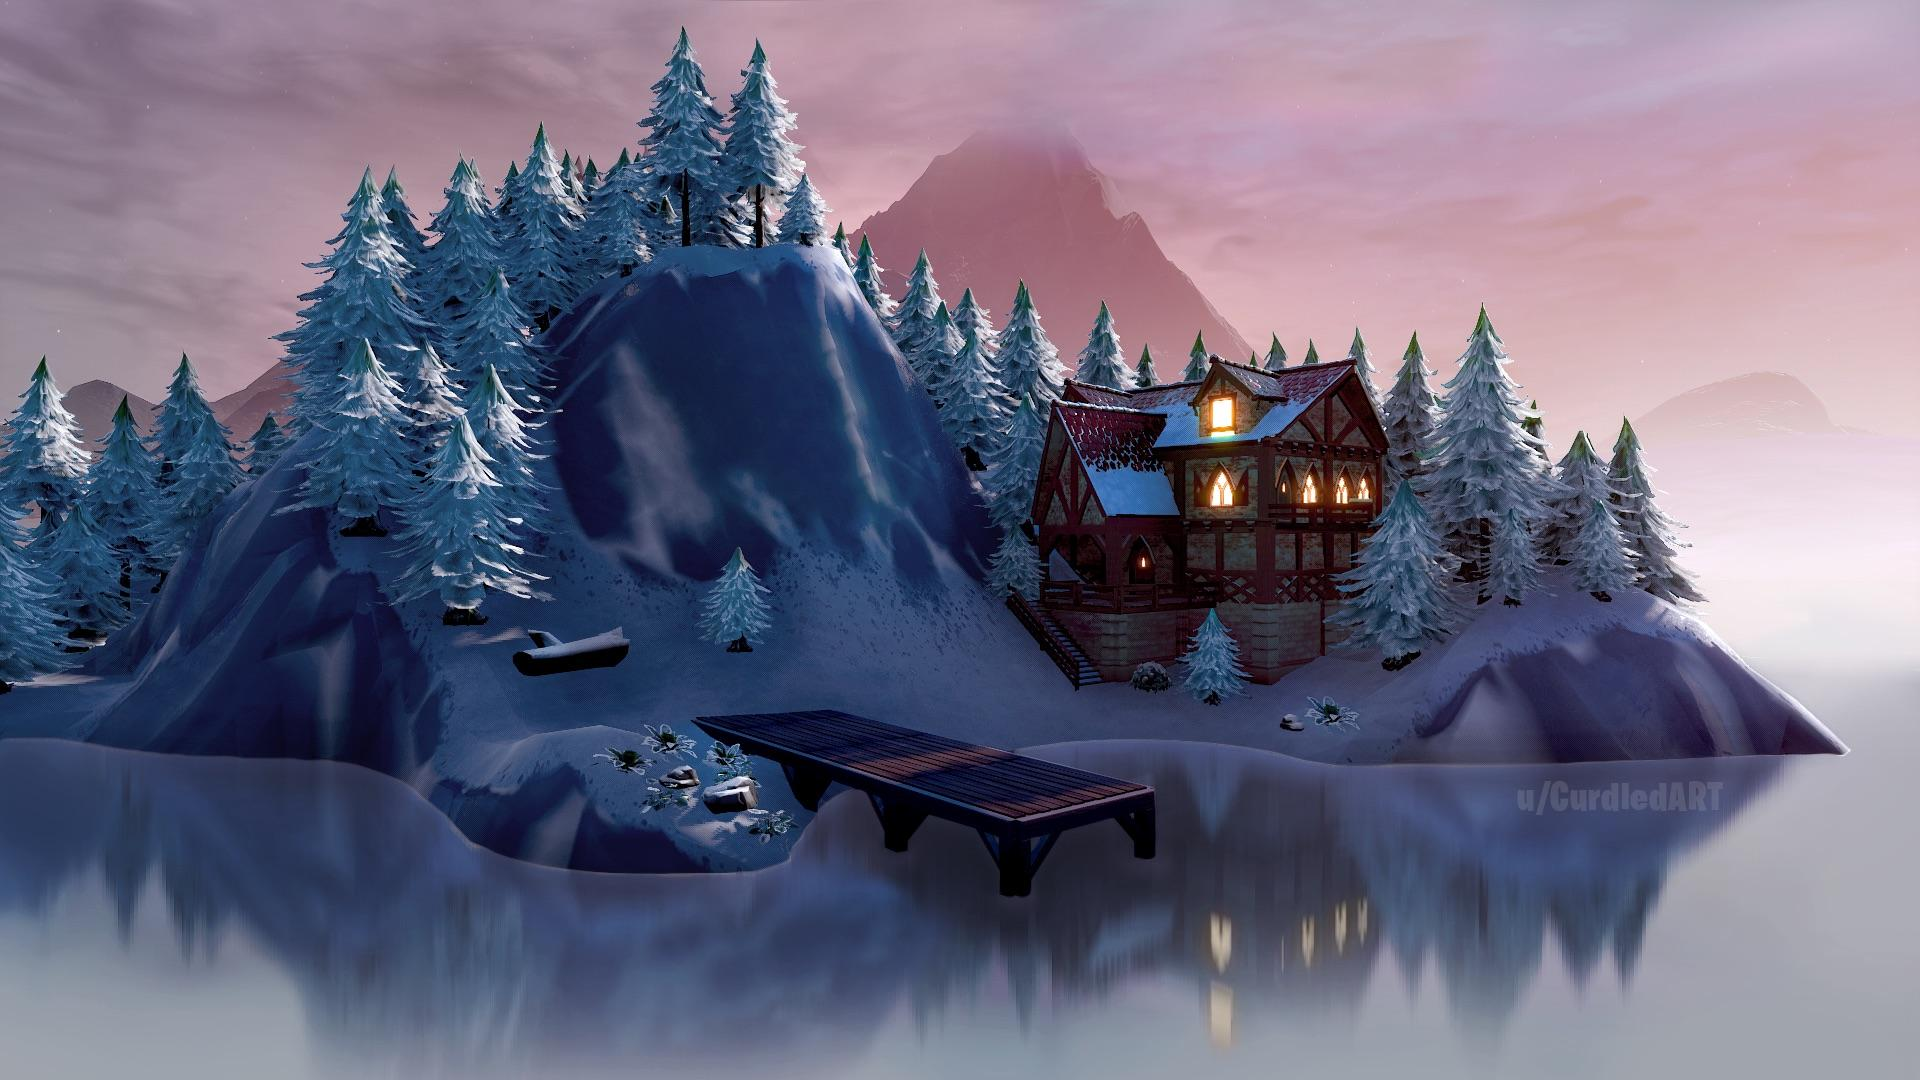 Cozy Cabin Wallpapers Top Free Cozy Cabin Backgrounds Wallpaperaccess